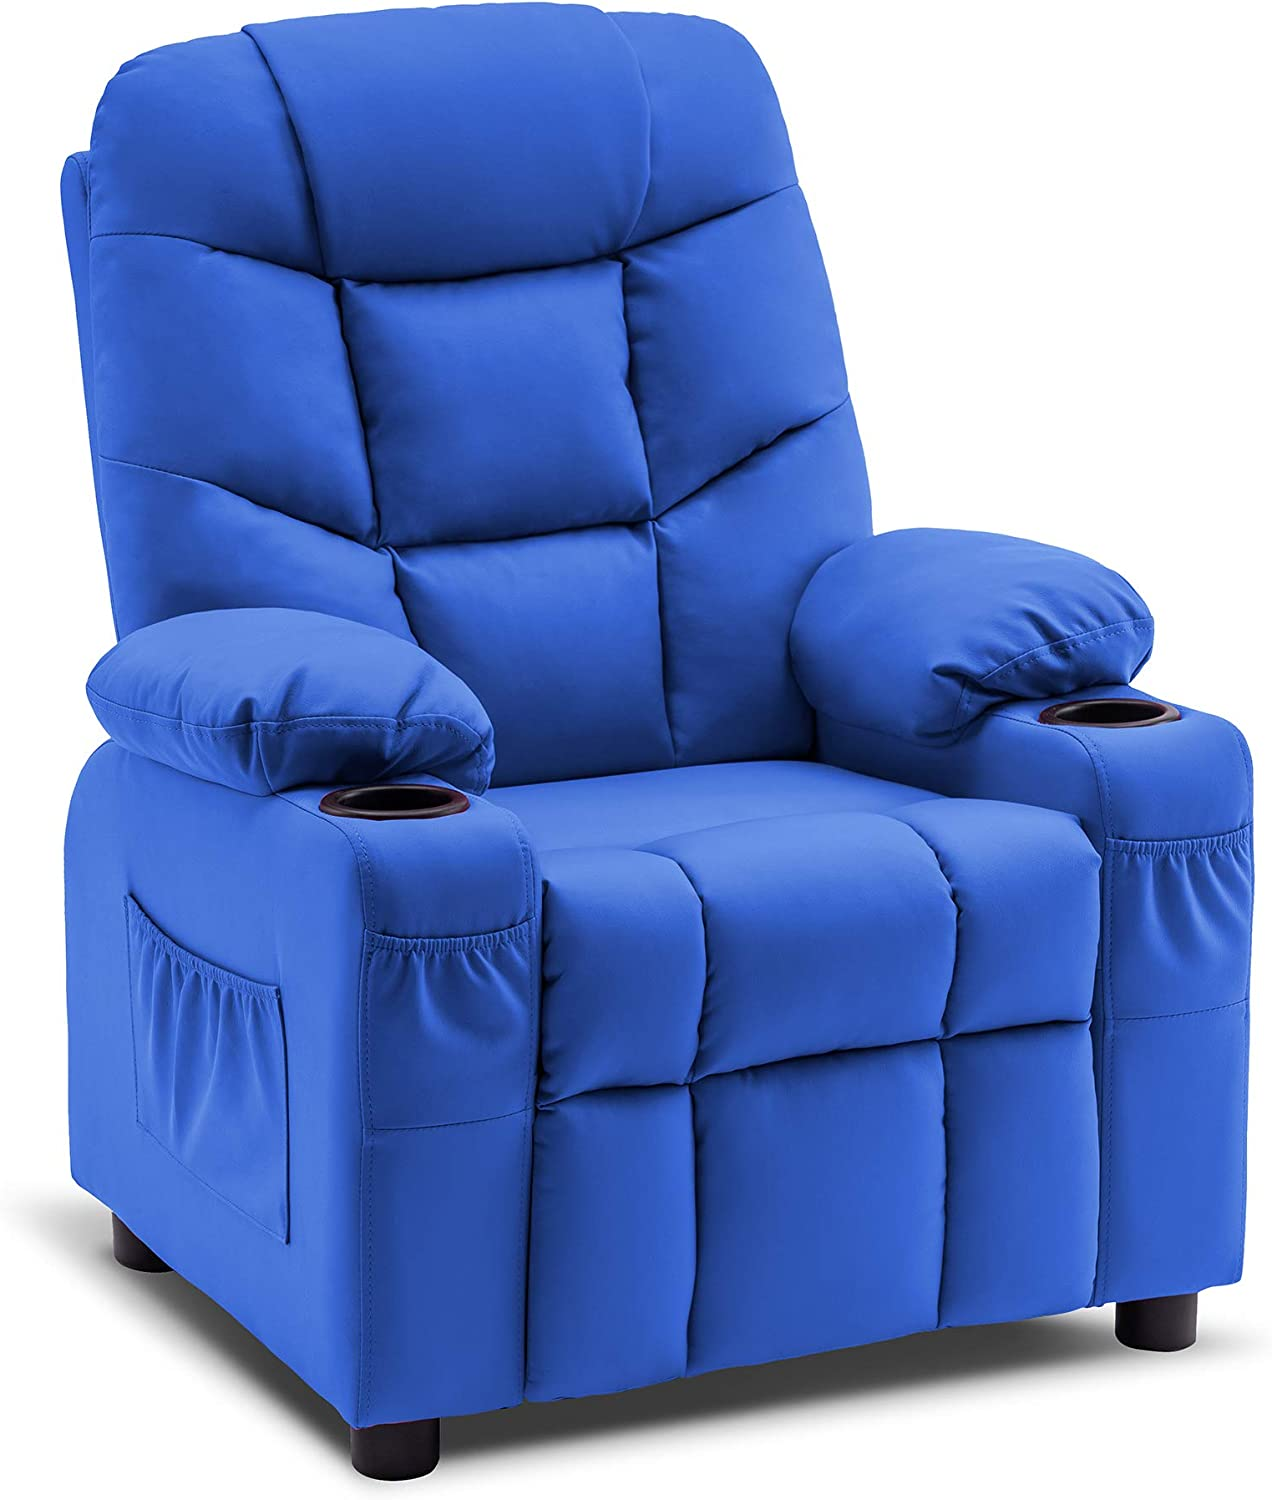 Mcombo Big Kids Recliner Chair with cupholders for boys and girls room.